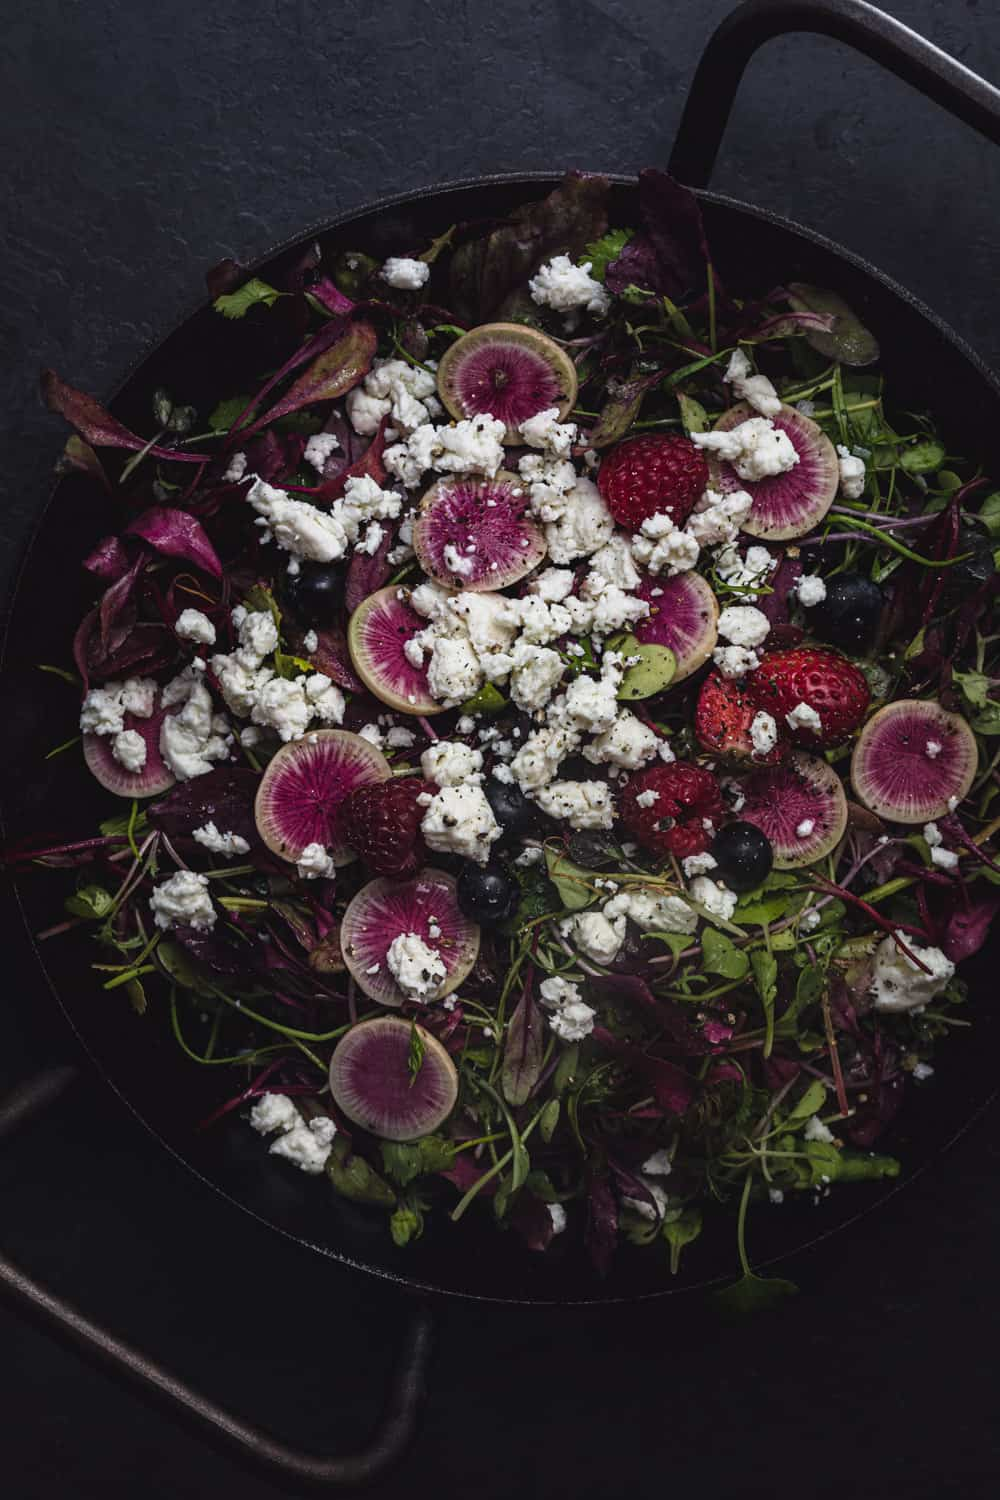 a summer green salad with berries, radishes, and cheese, overhead shot.